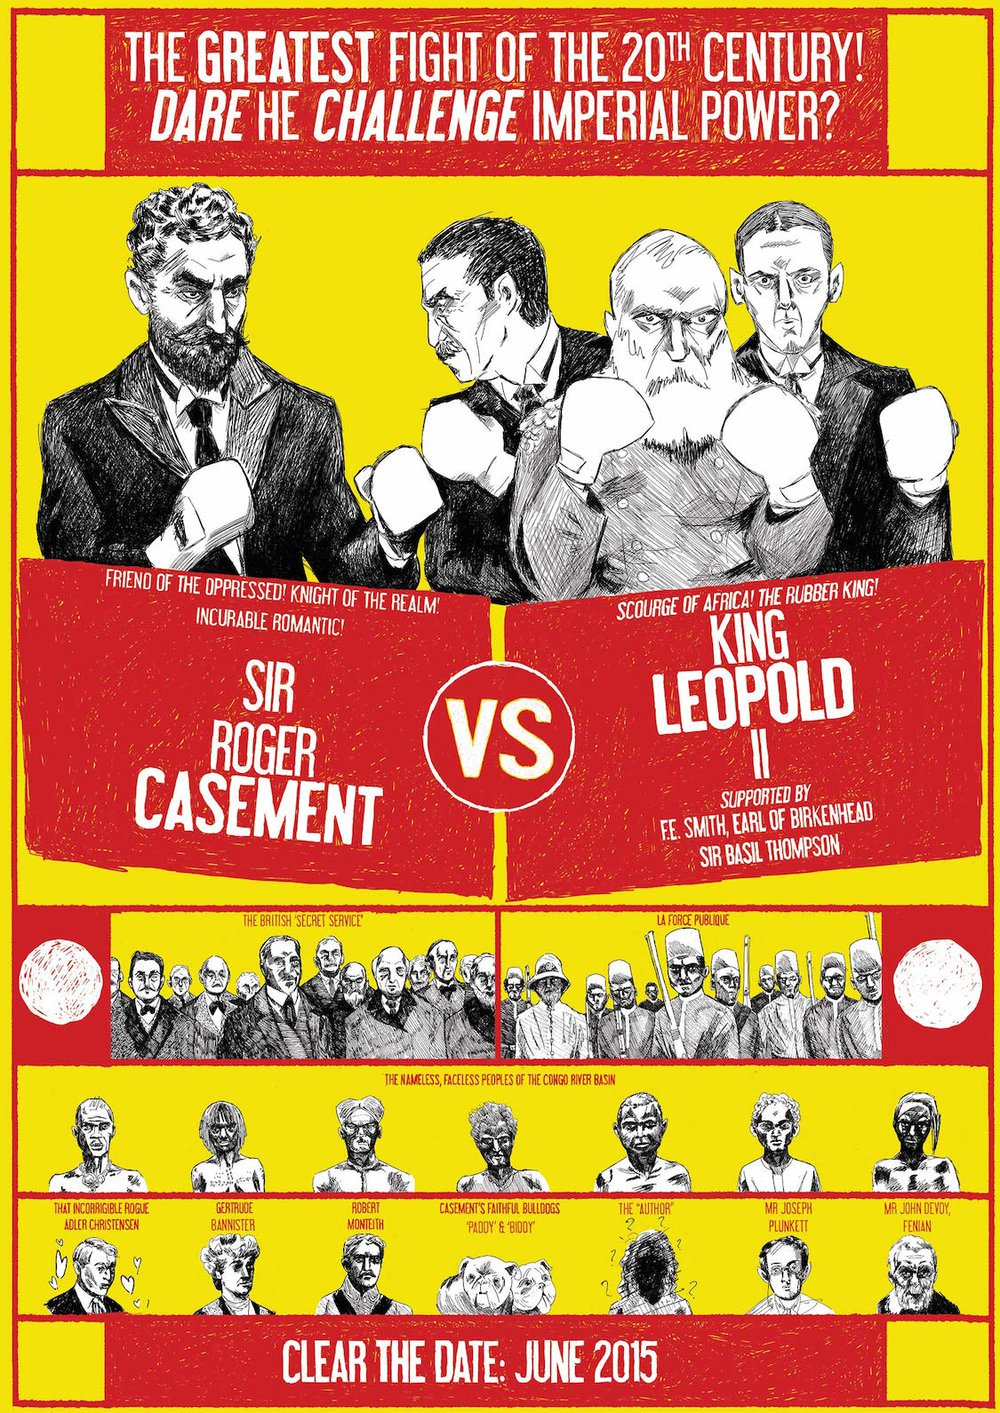 Sir Roger Casement vs King Leopold II: The Greatest Fight of the 20th Century